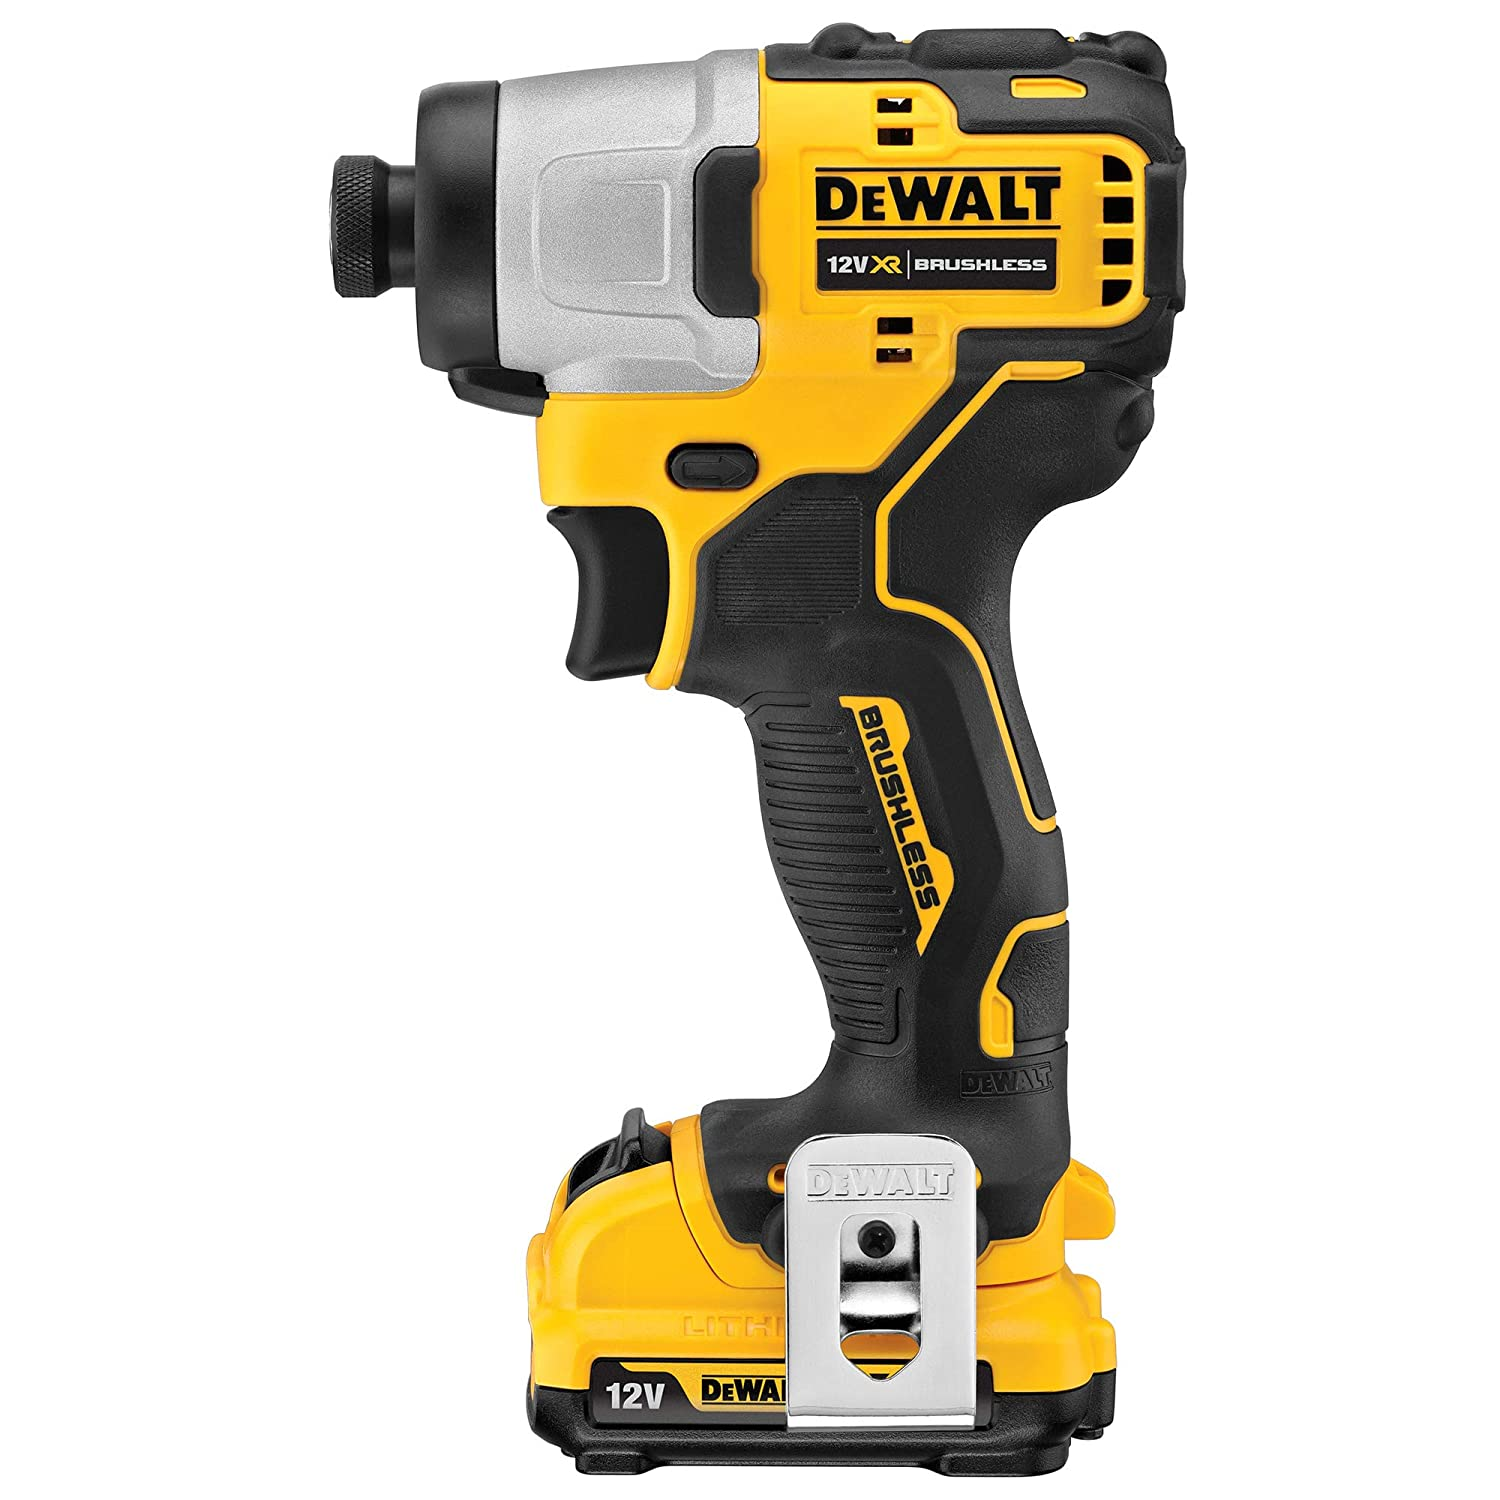 12V, Brushless Compact Impact Driver